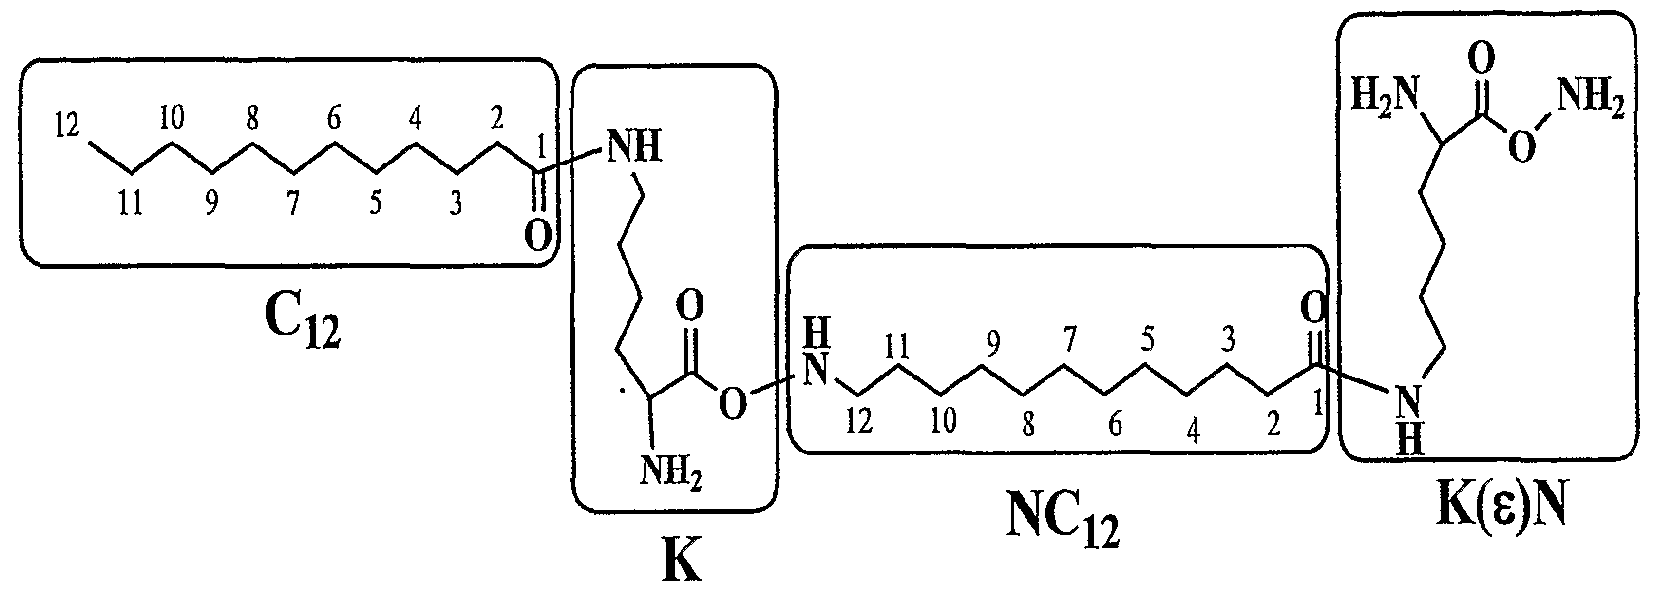 WO2008132738A2 - Anticancerous polymeric agents - Google Patents